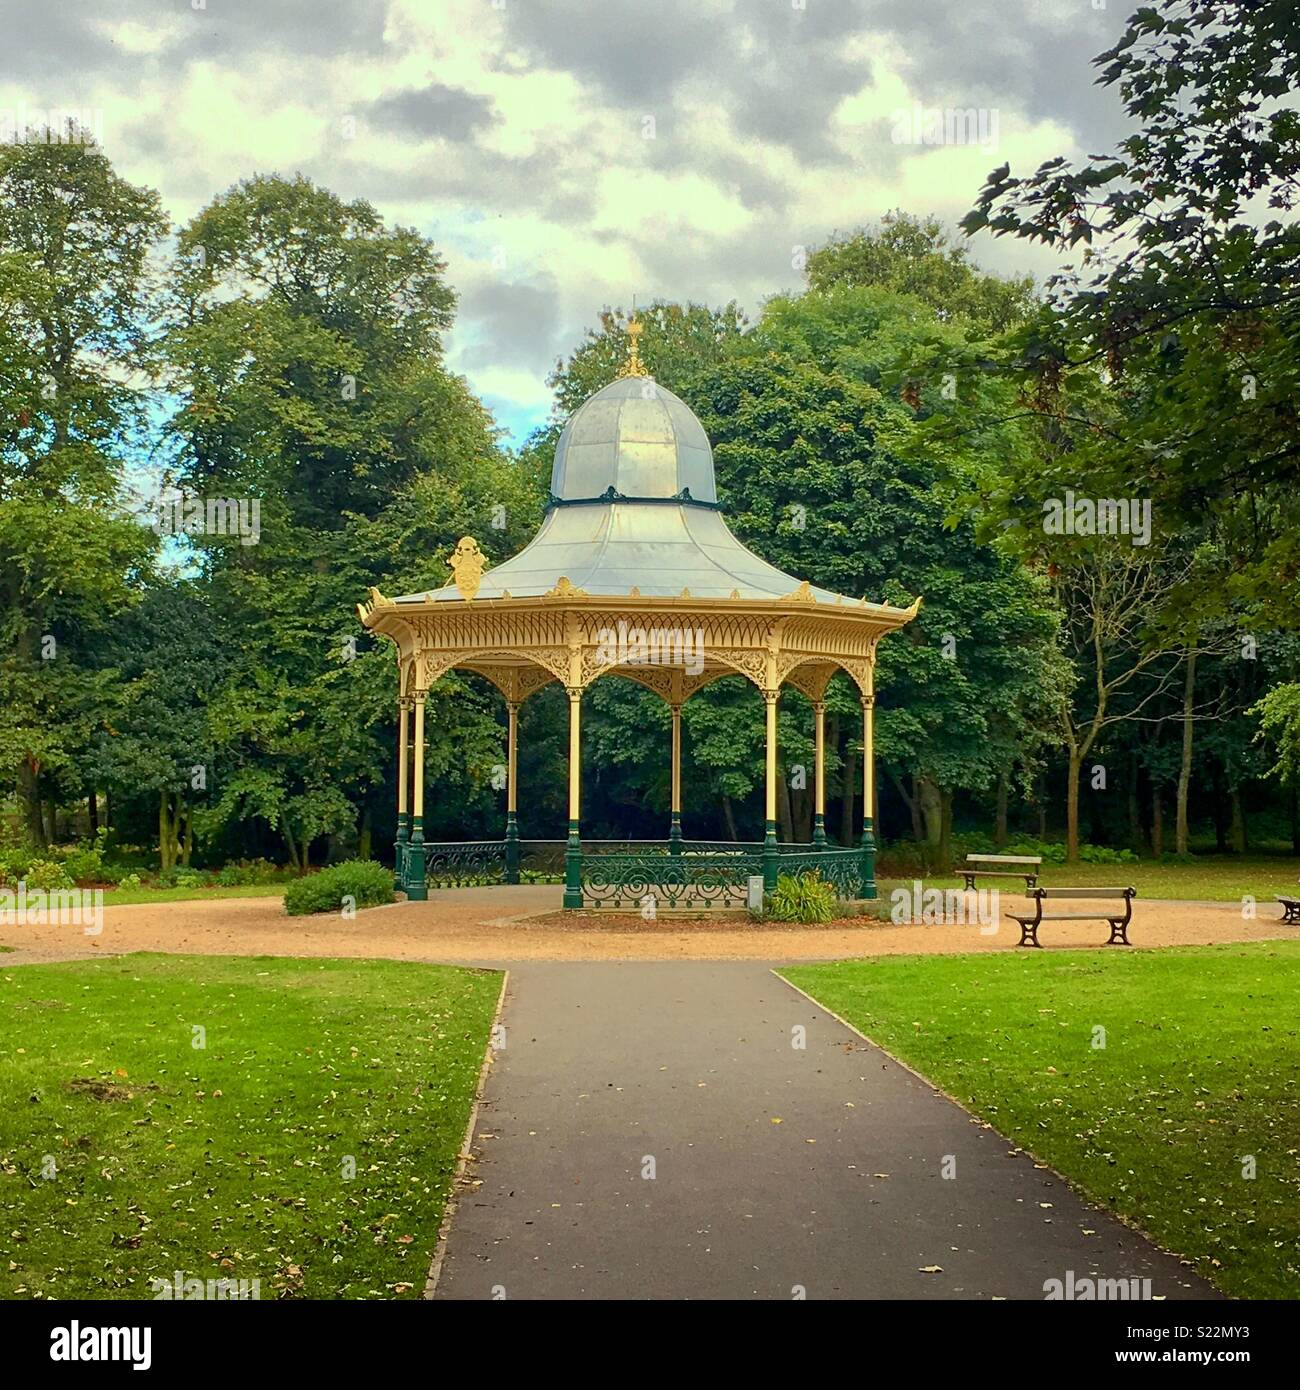 Bandstand at Exhibition Park, Newcastle upon Tyne, UK - Stock Image